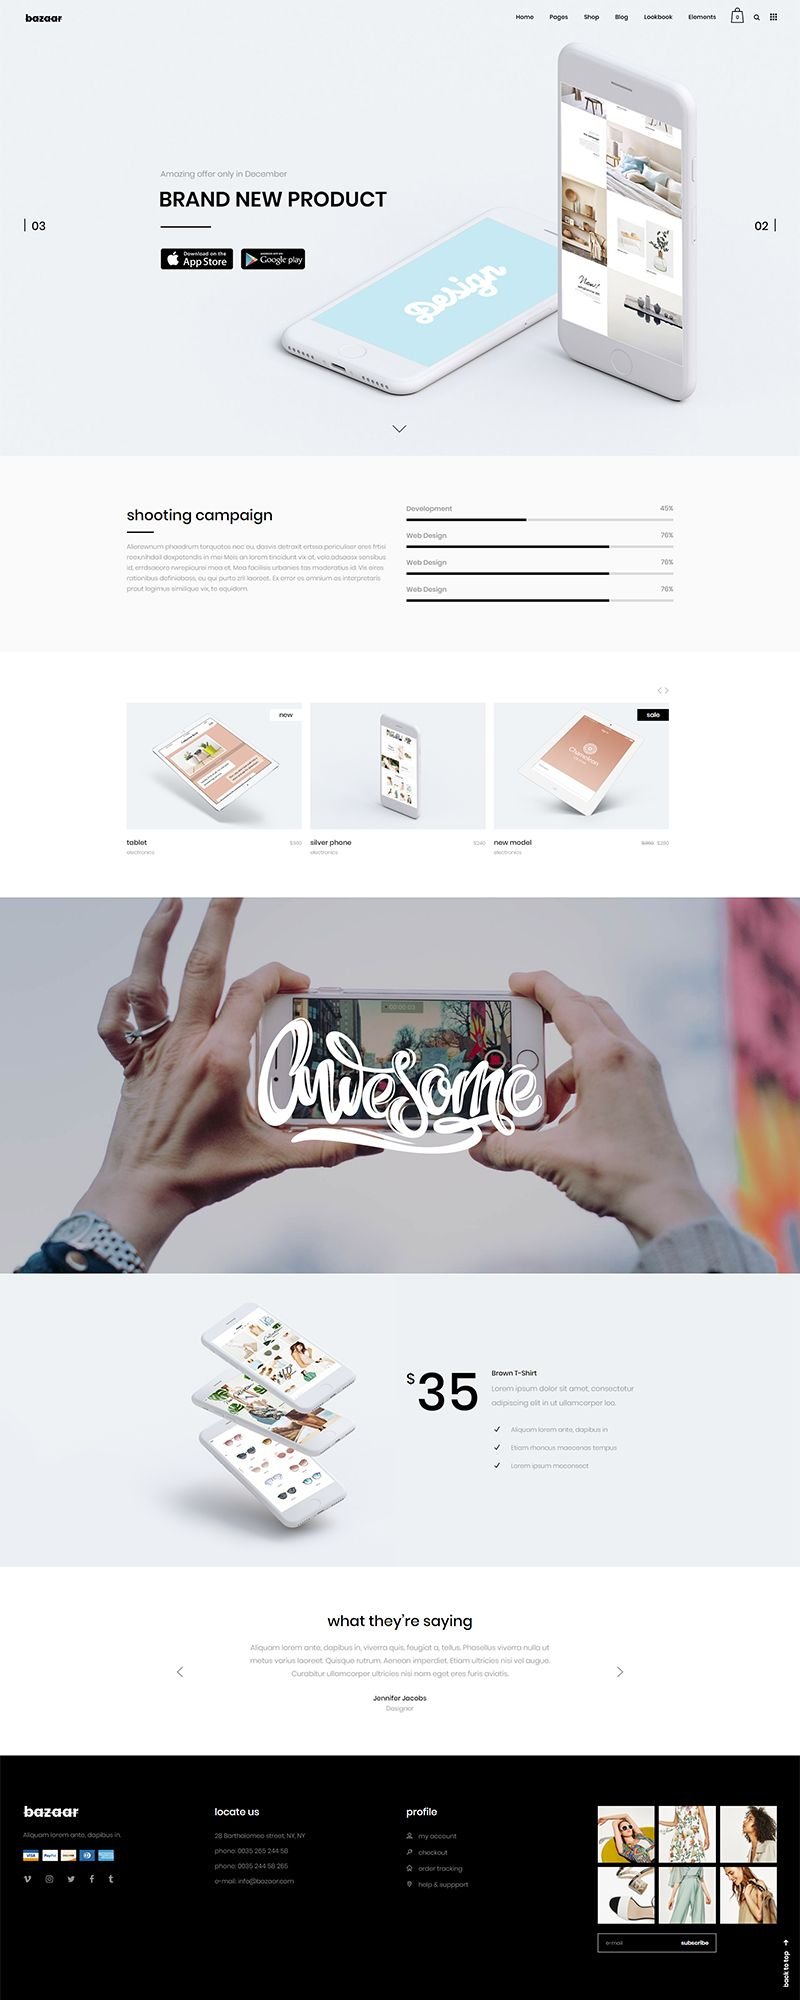 Bazaar WordPress theme is made with care and it ensures that